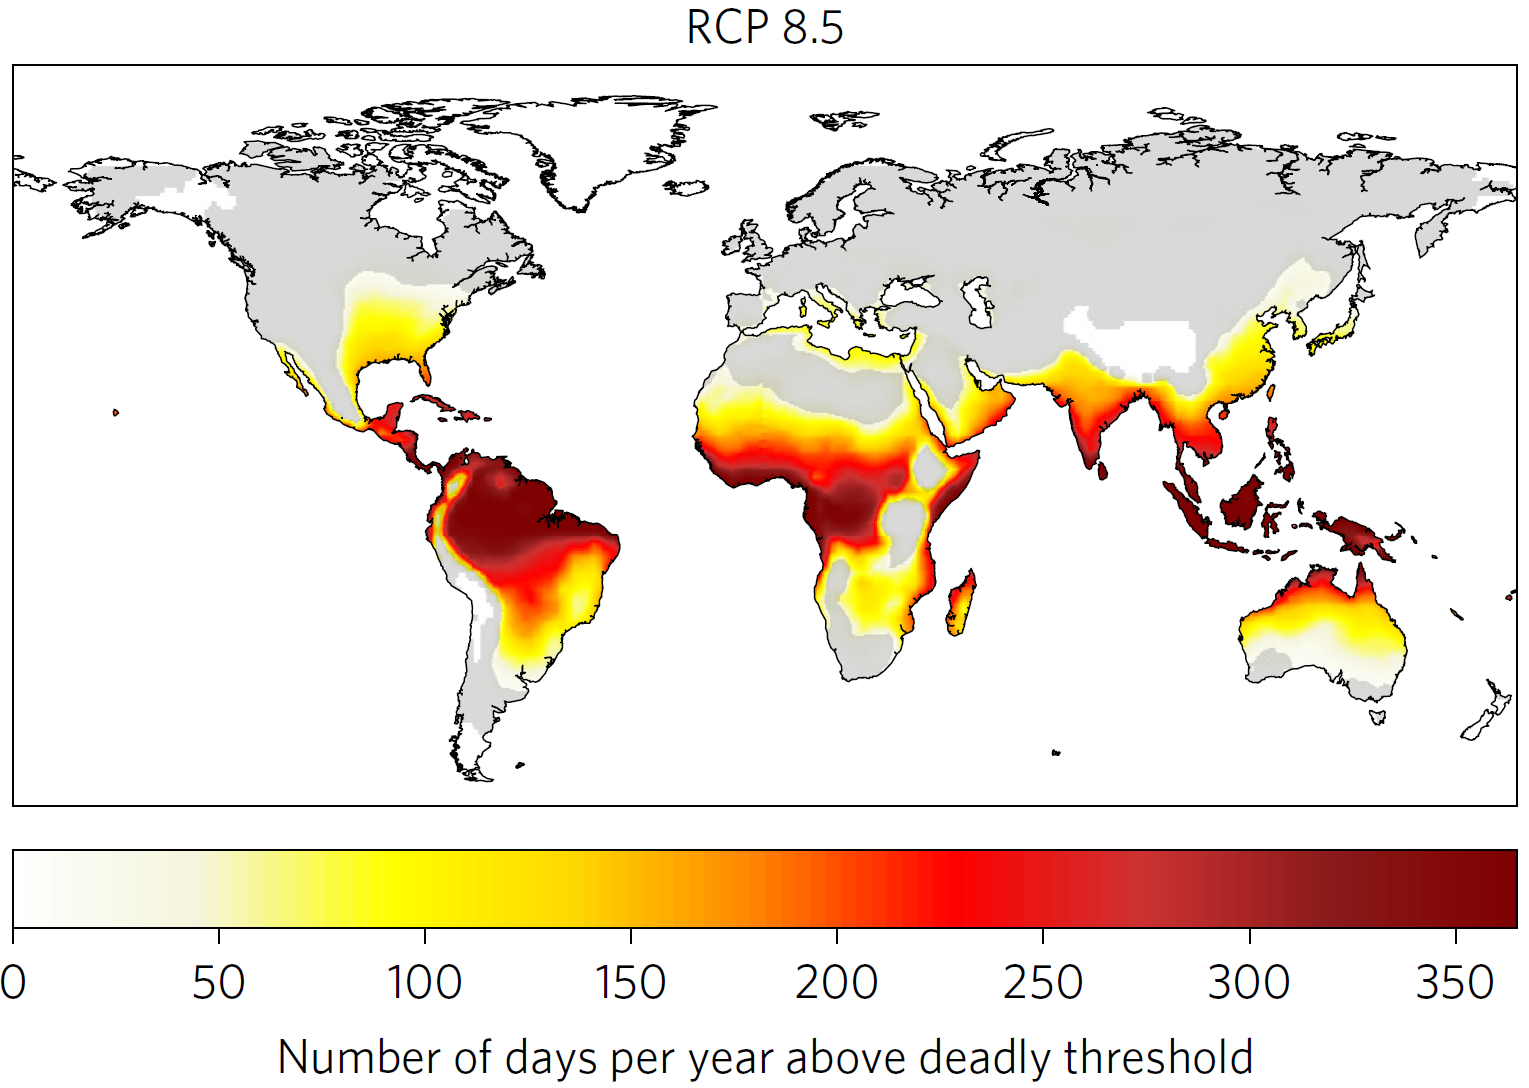 Number of days per year above deadly threshold in 2100 in scenario RCP 8.5